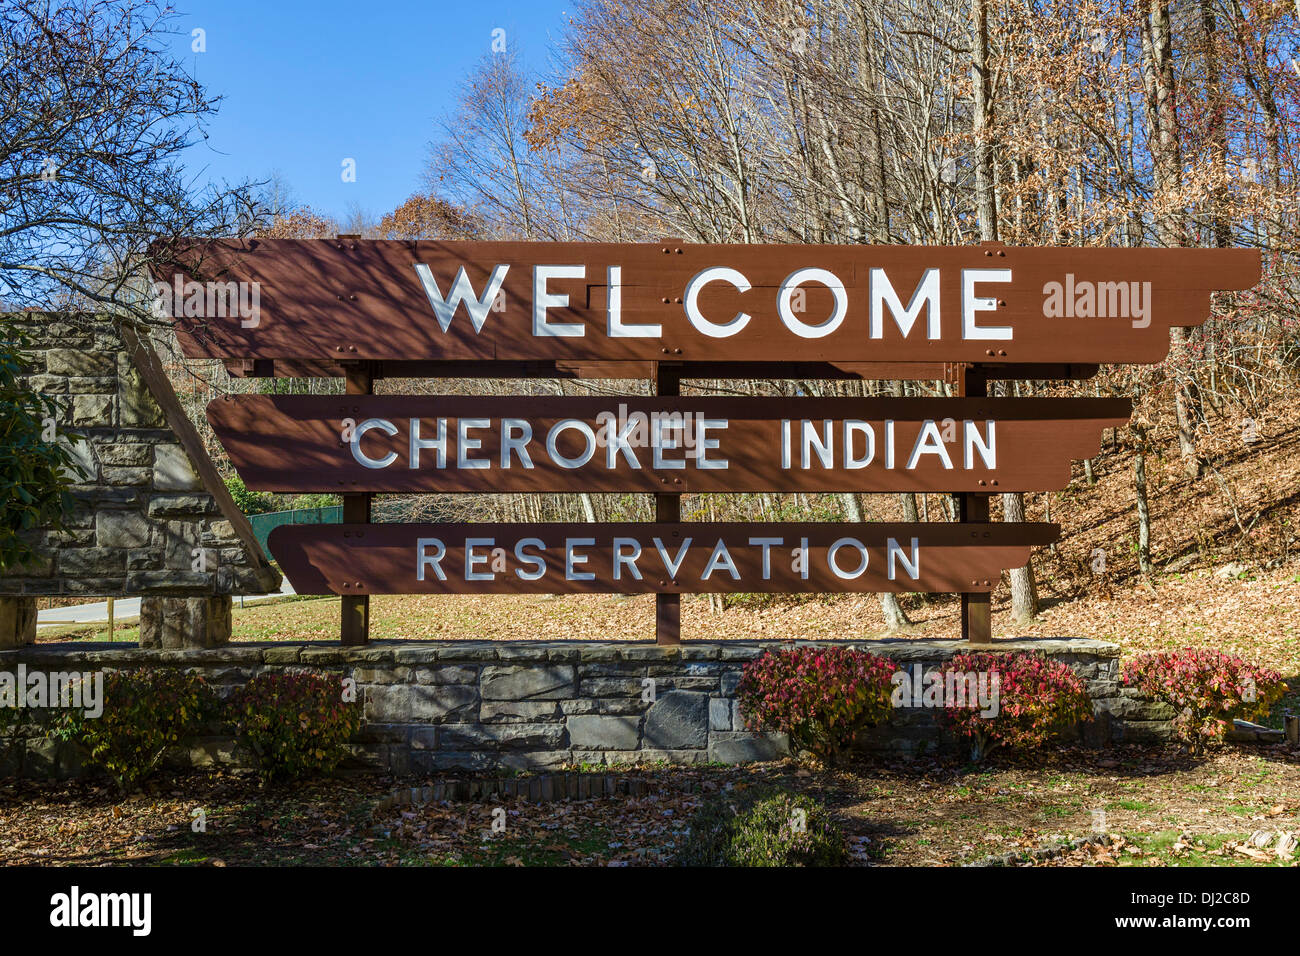 Welcome sign to the Cherokee Indian Reservation, Cherokee, North Carolina, USA - Stock Image